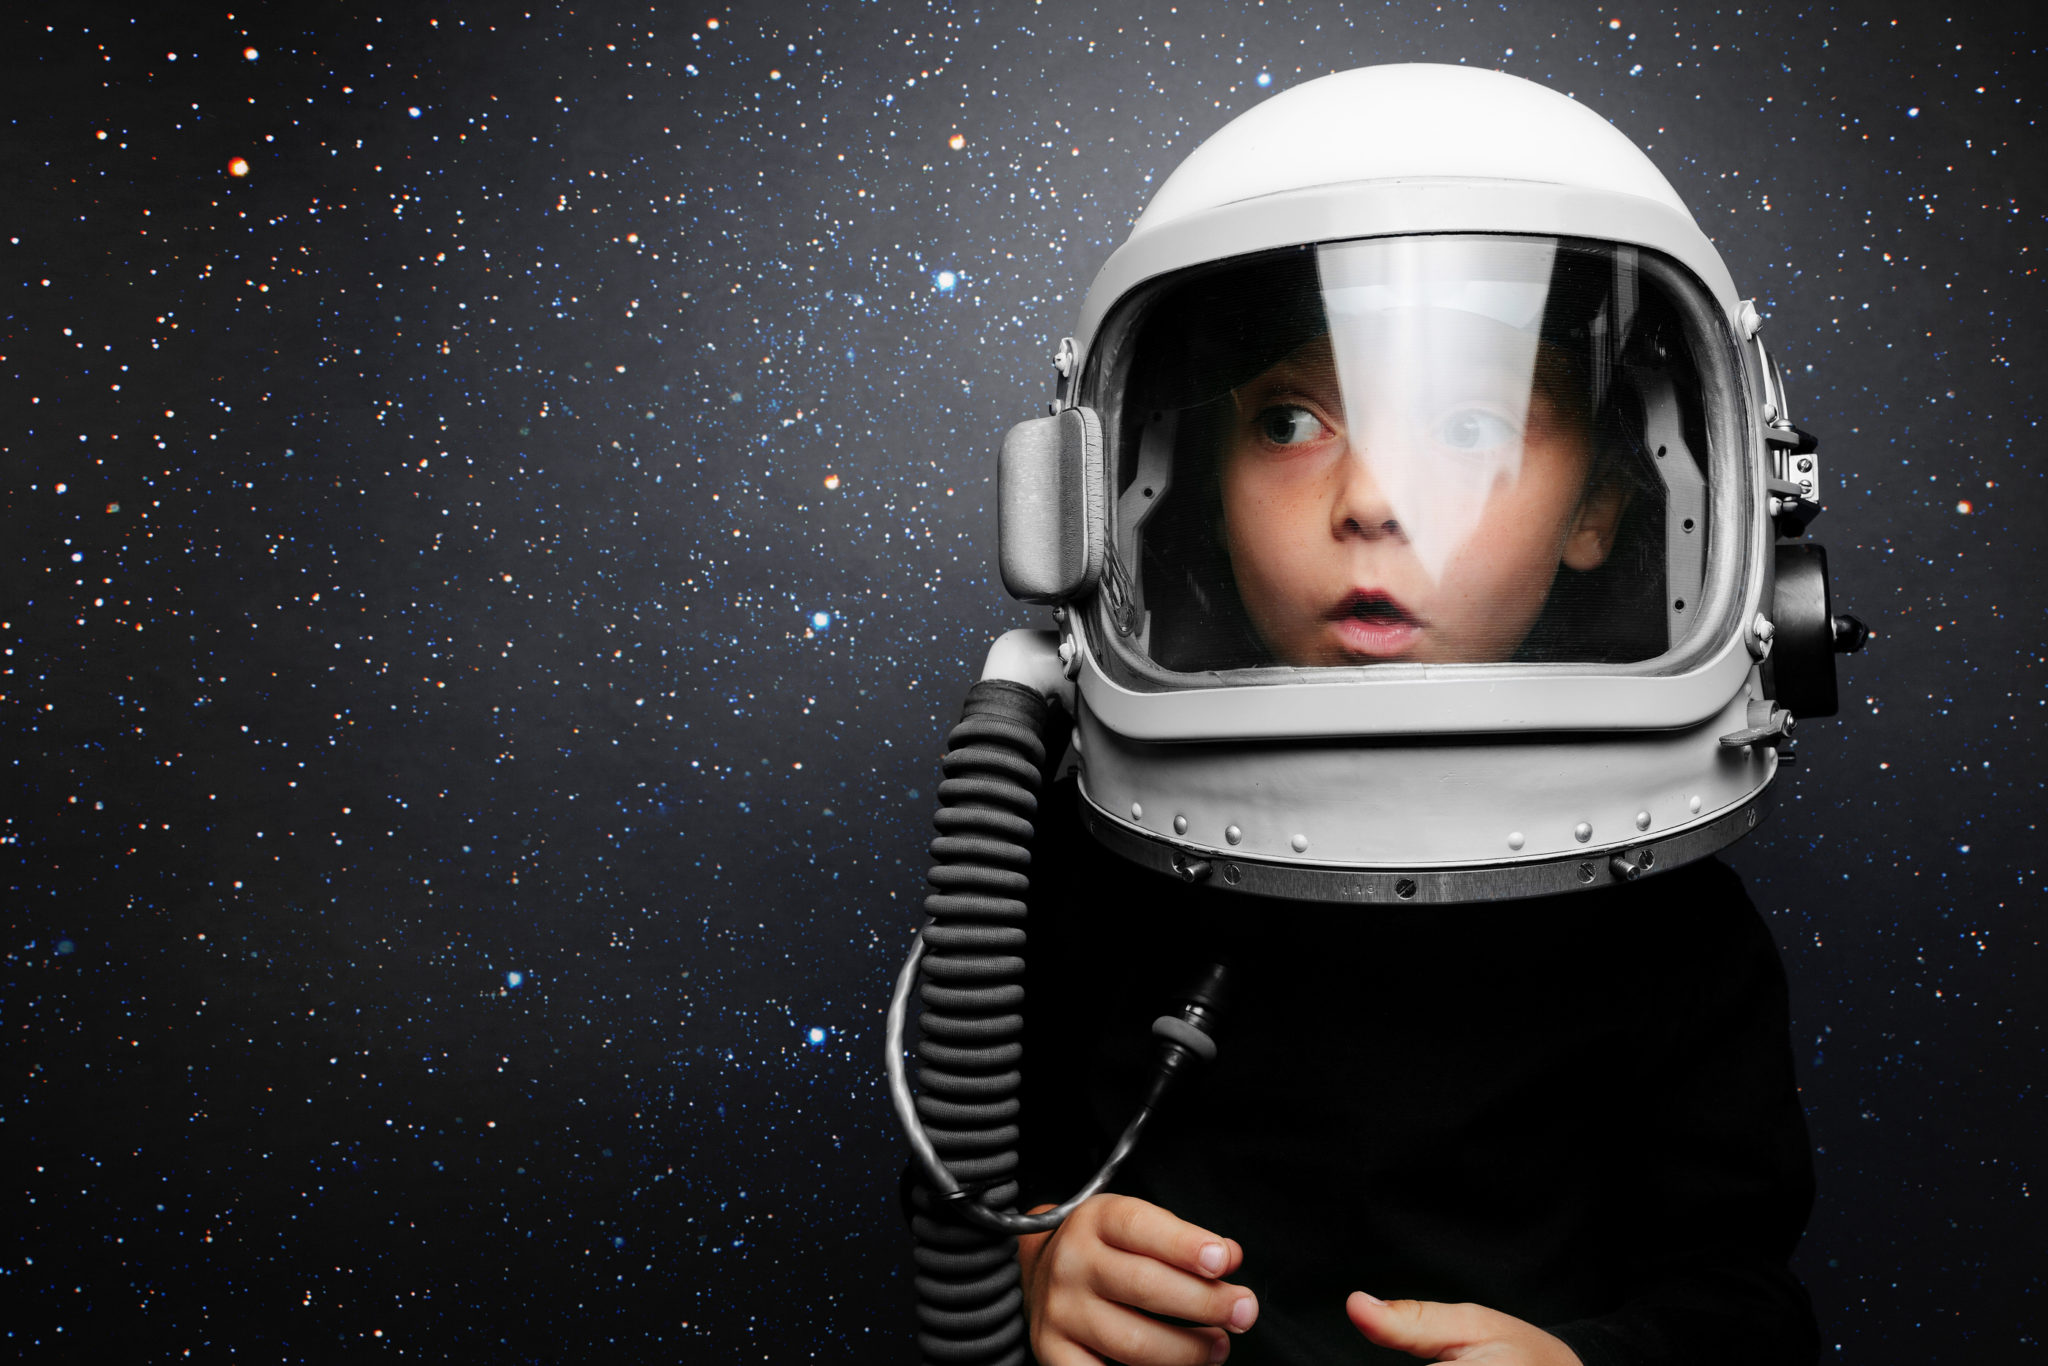 A small child imagines himself to be an astronaut in an astronau